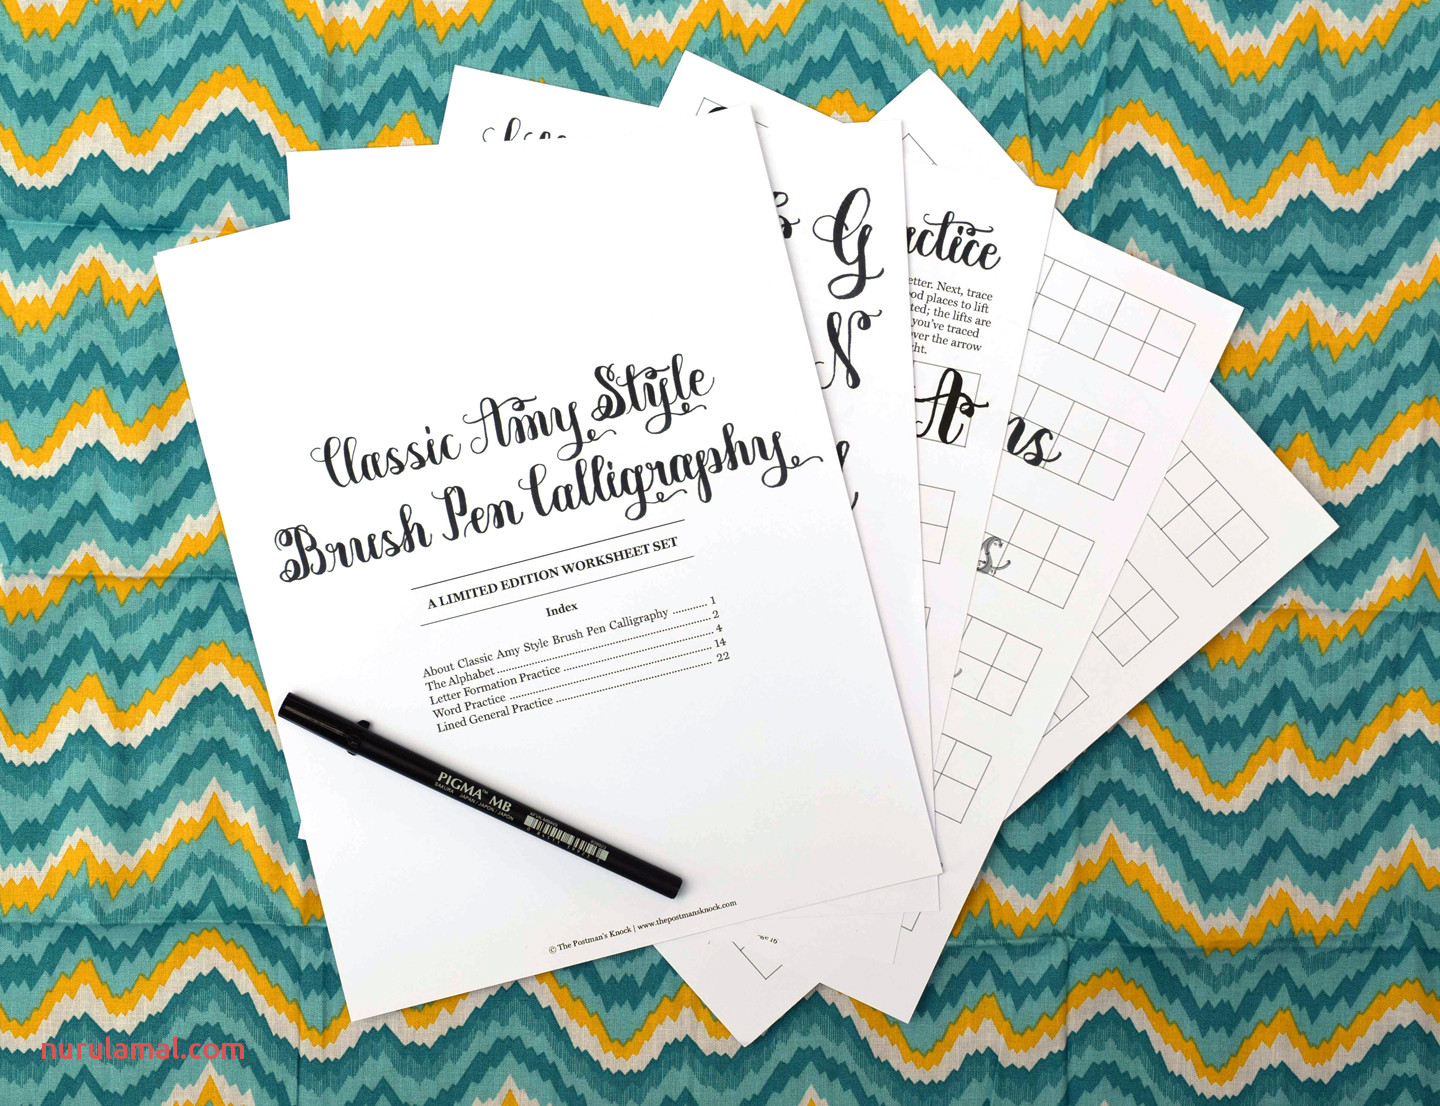 Classic Amy Style Brush Pen Calligraphy Worksheet Limited Edition Secret Link – the Postman S Knock